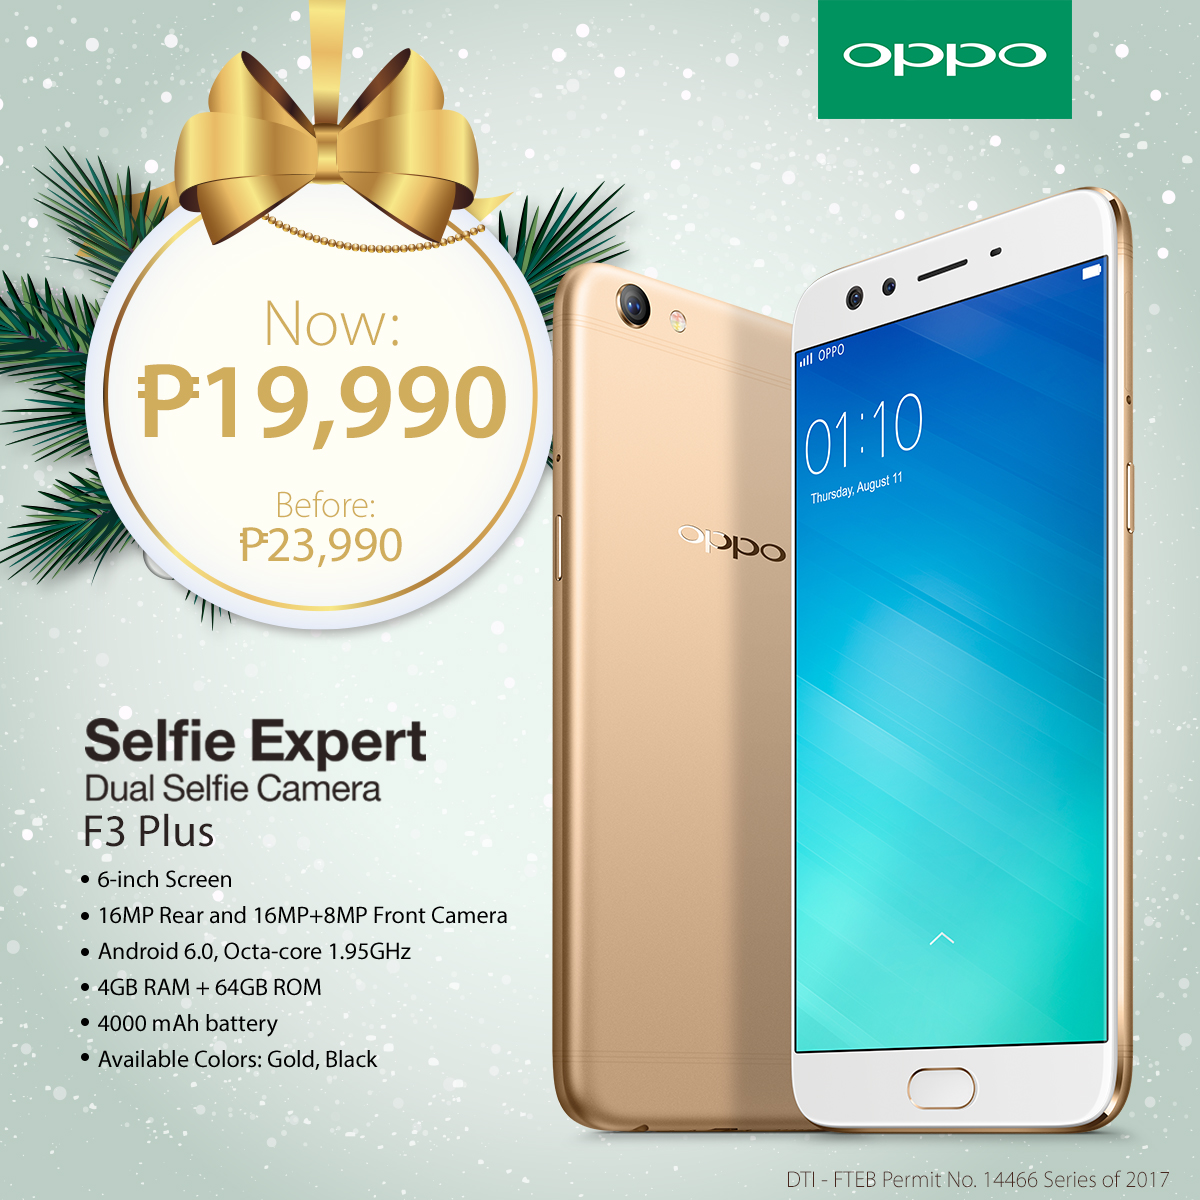 Crownless Ads And Media 2017 Oppo F3 Citra Land The 6 Inch Full Hd Design Of Plus Will Definitely Give You Extra Points On Your Gatherings Taking Groufies Has Never Been More Fun With